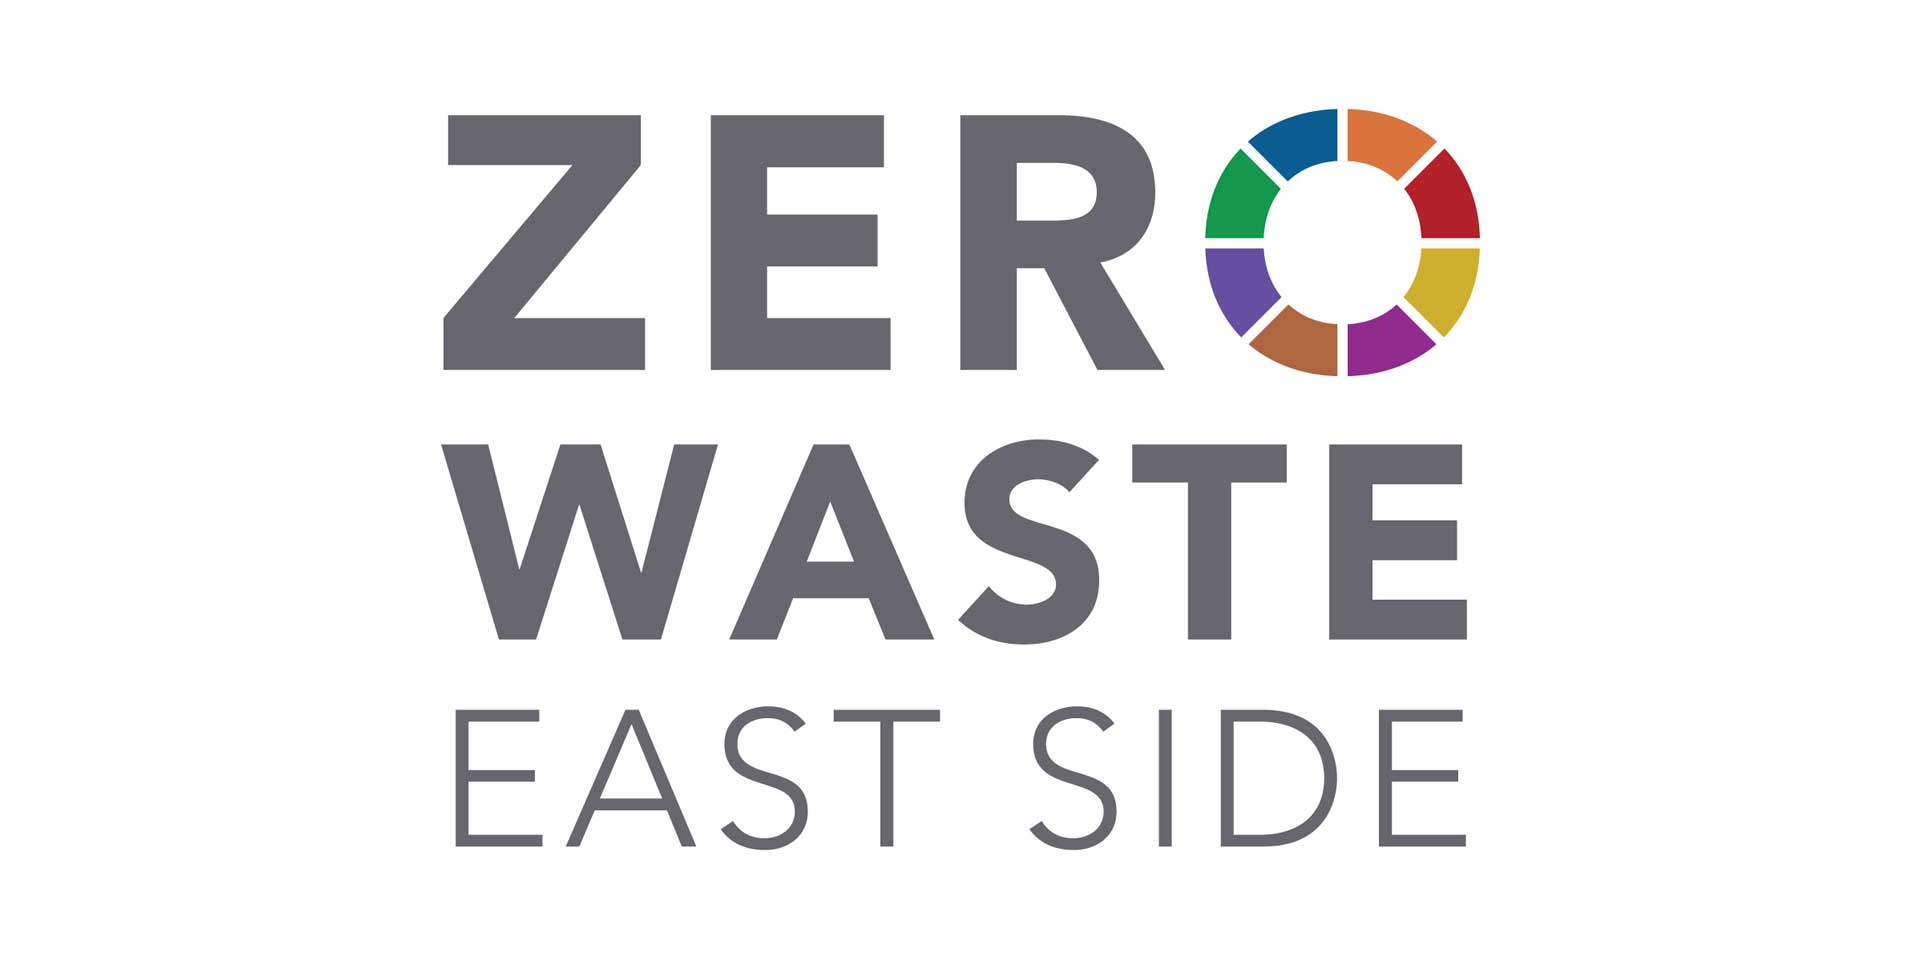 Zero Waste East Side logo